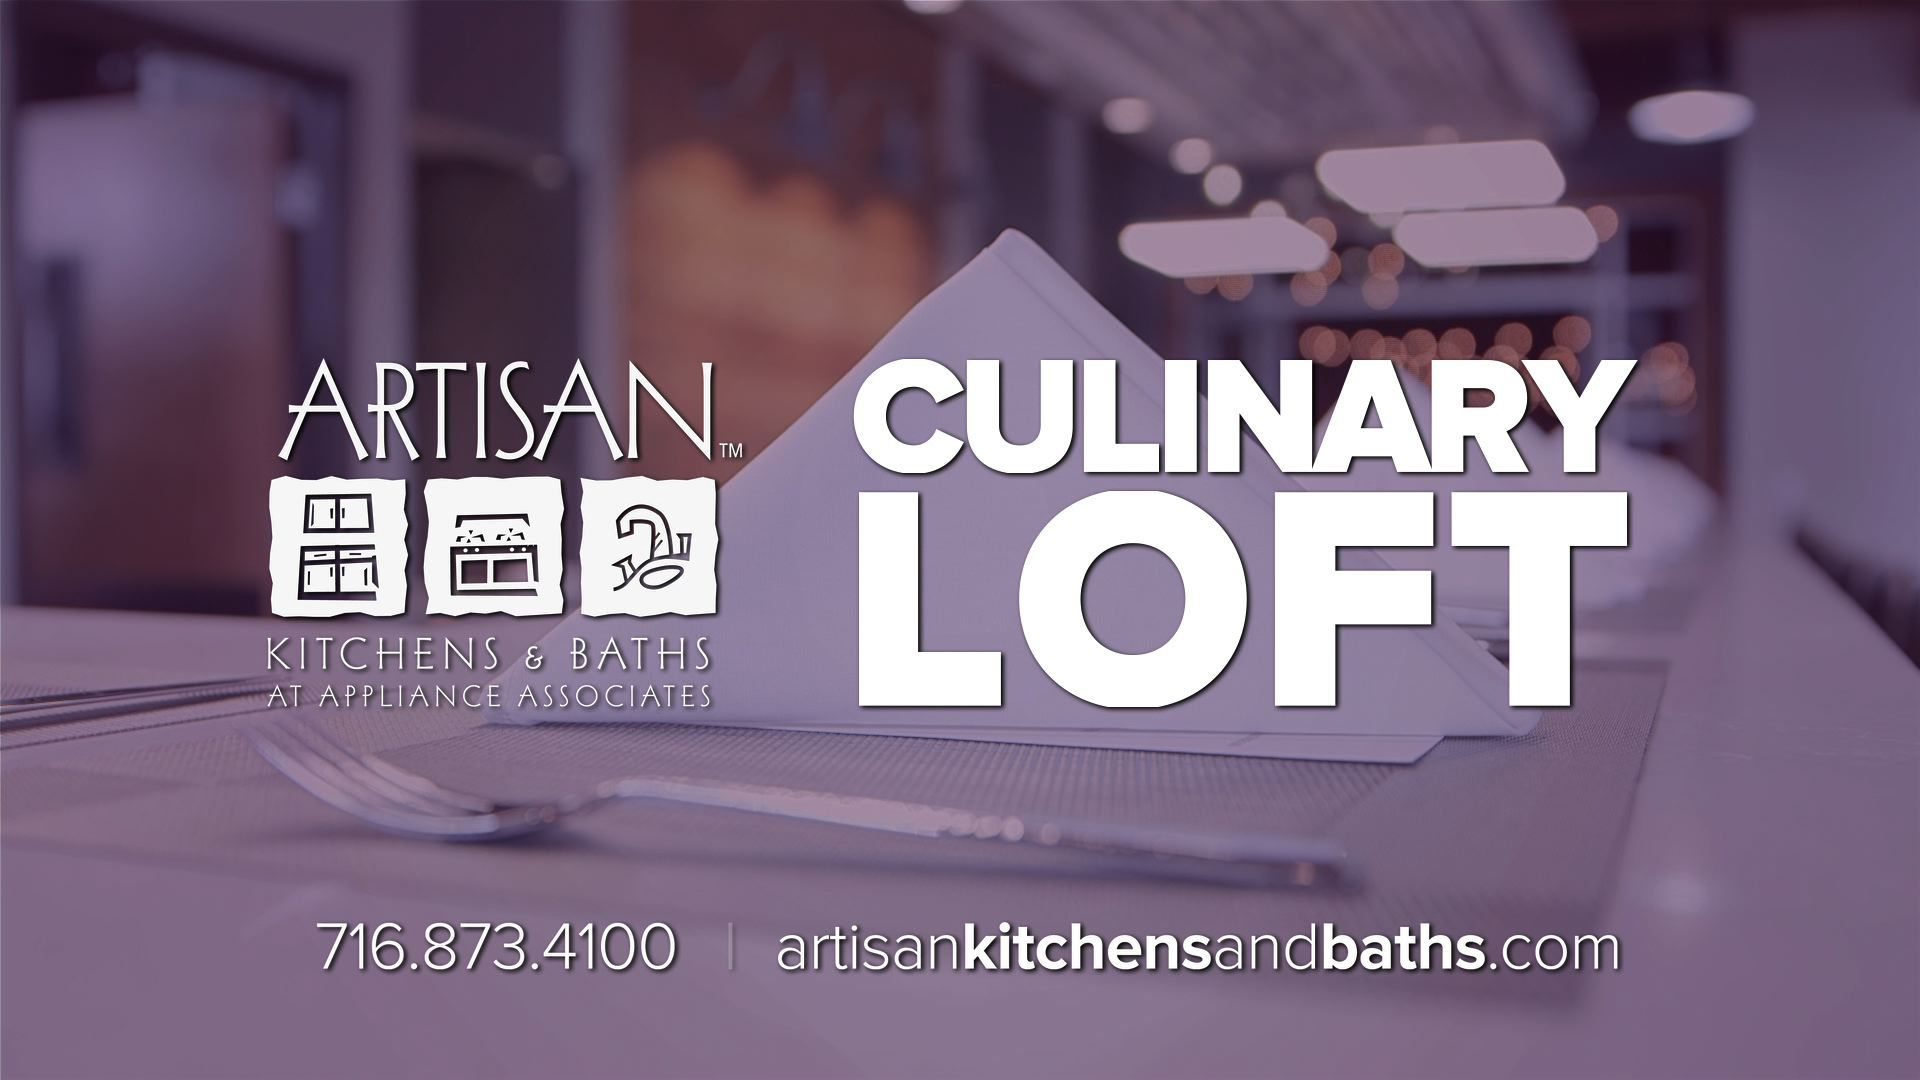 The Artisan Culinary Loft at Artisan Kitchens and Baths in ...